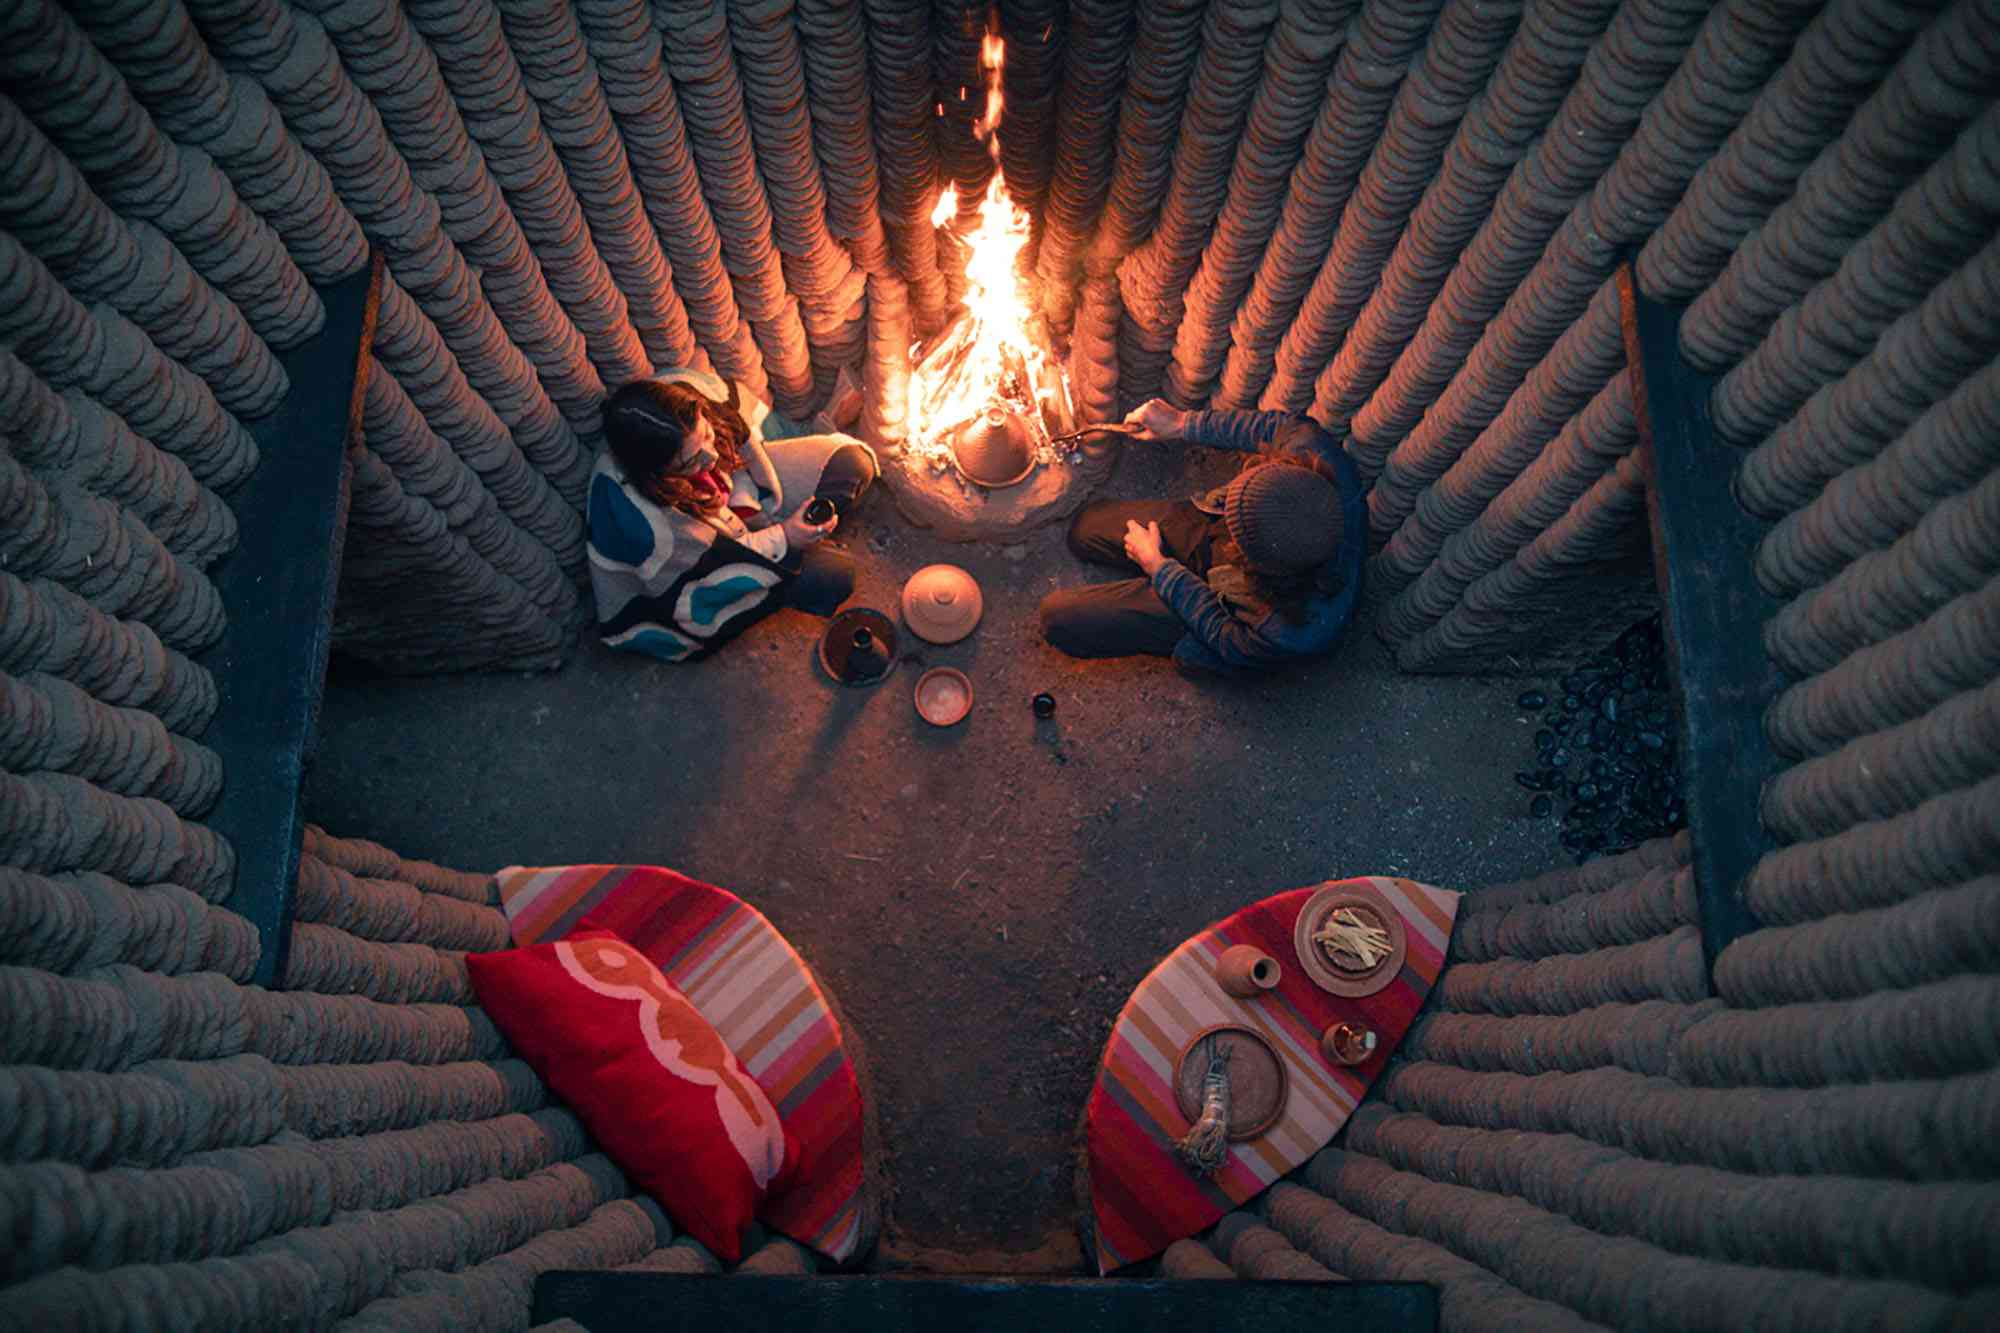 Casa Covida 3D printed adobe house by Emerging Objects central space